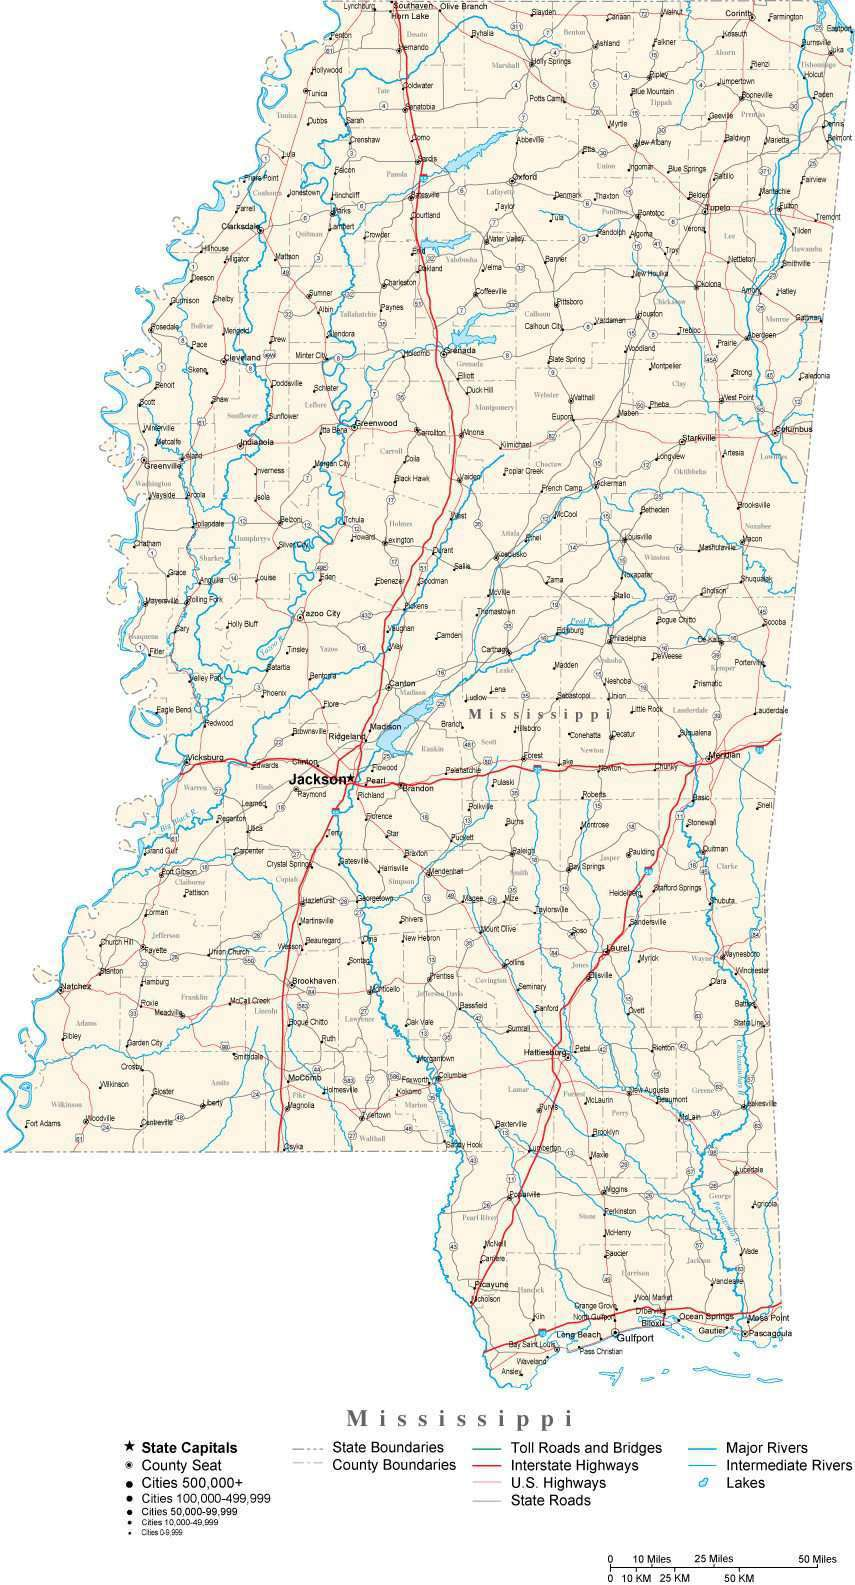 Mississippi Map - Cut Out Style - with Capital, County Boundaries, on map of singapore, map of india, map of austria, map of united arab emirates, map of finland, map of thailand, google maps mississippi, map of united kingdom, road maps mississippi, map of romania, map of australia, map of japan, weather map mississippi, map of denmark, united states map mississippi, map of us territories, state flags mississippi, us map mississippi, map of ireland, map of netherlands,